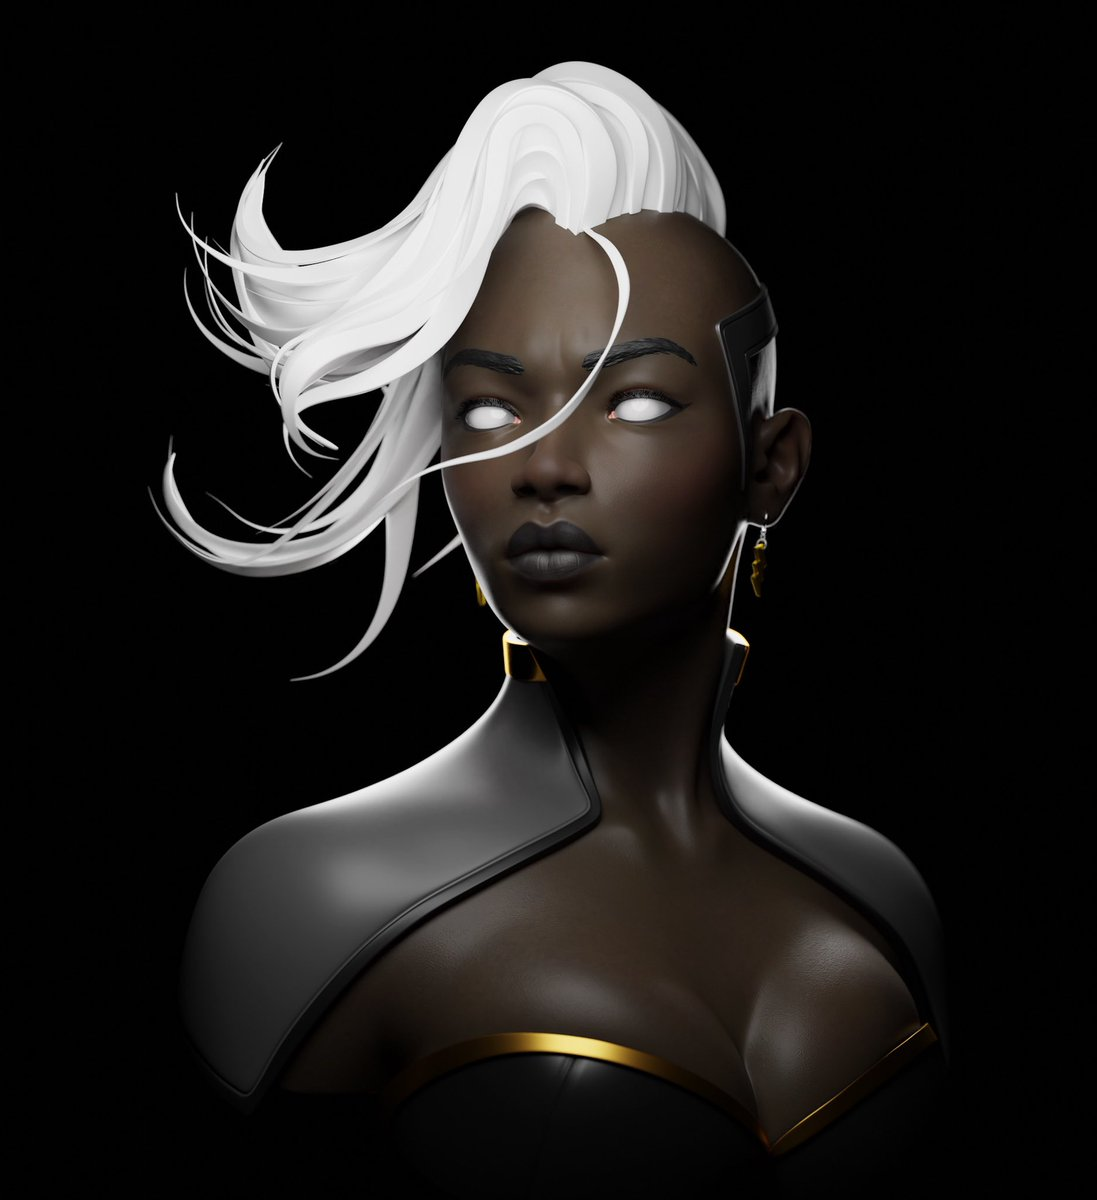 Storm better have her own SOLO film btw.  Storm is too bloody iconic to be reduced down to just 'one of the X men'...  I'm gonna need Wonder Woman and Captain Marvel treatment #XMen<br>http://pic.twitter.com/gjYCvmsdVh